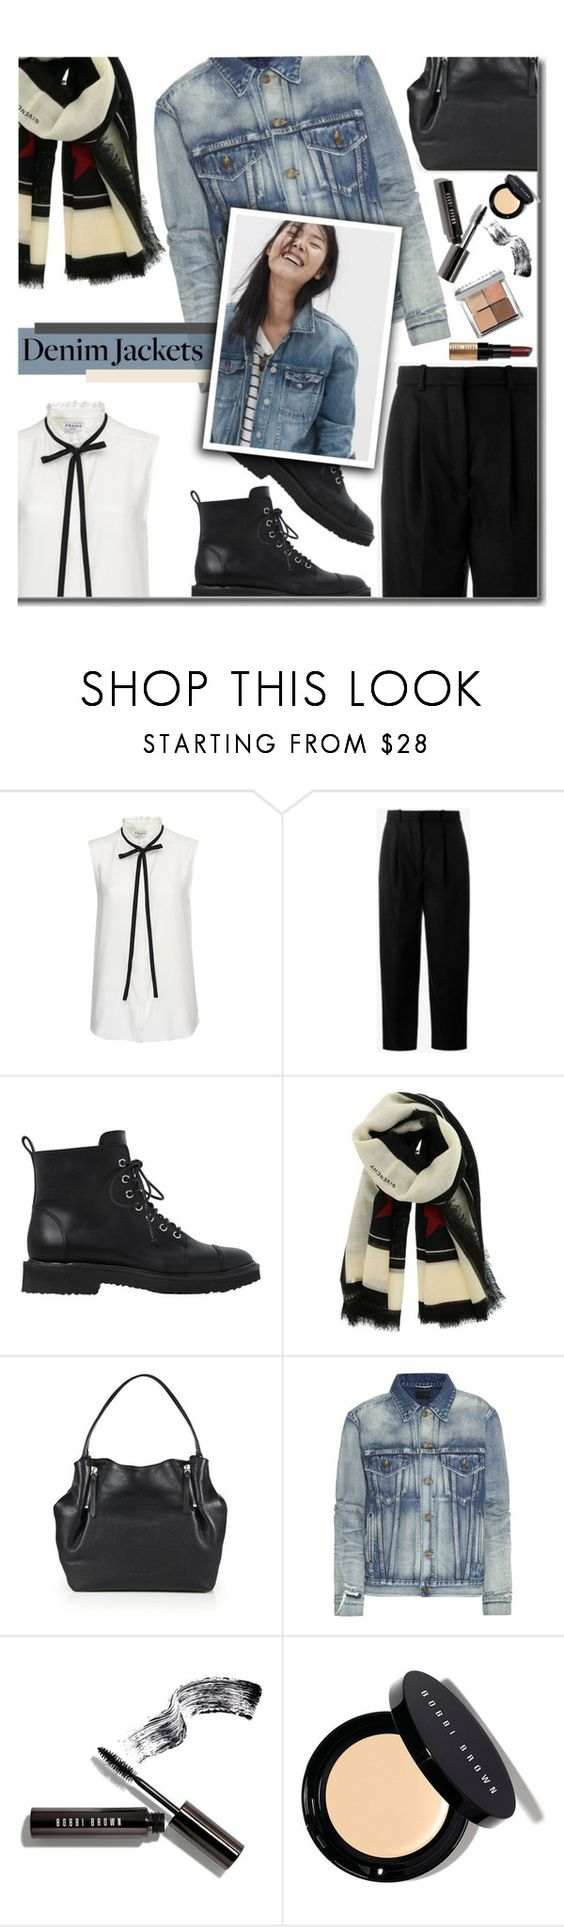 """""""010 - denim jackets"""" by earendil-xx ❤ liked on Polyvore featuring Frame Denim, Acne Studios, Giuseppe Zanotti, Givenchy, Burberry, Yves Saint Laurent, Madewell and Bobbi Brown Cosmetics"""